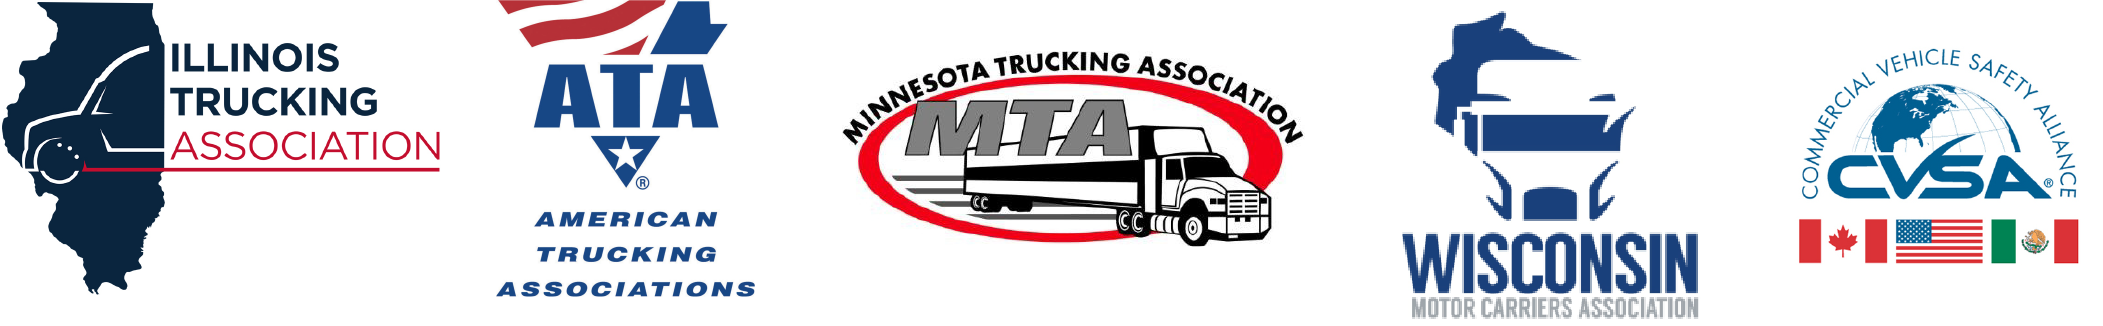 truckingaffiliationsbanner-2.png